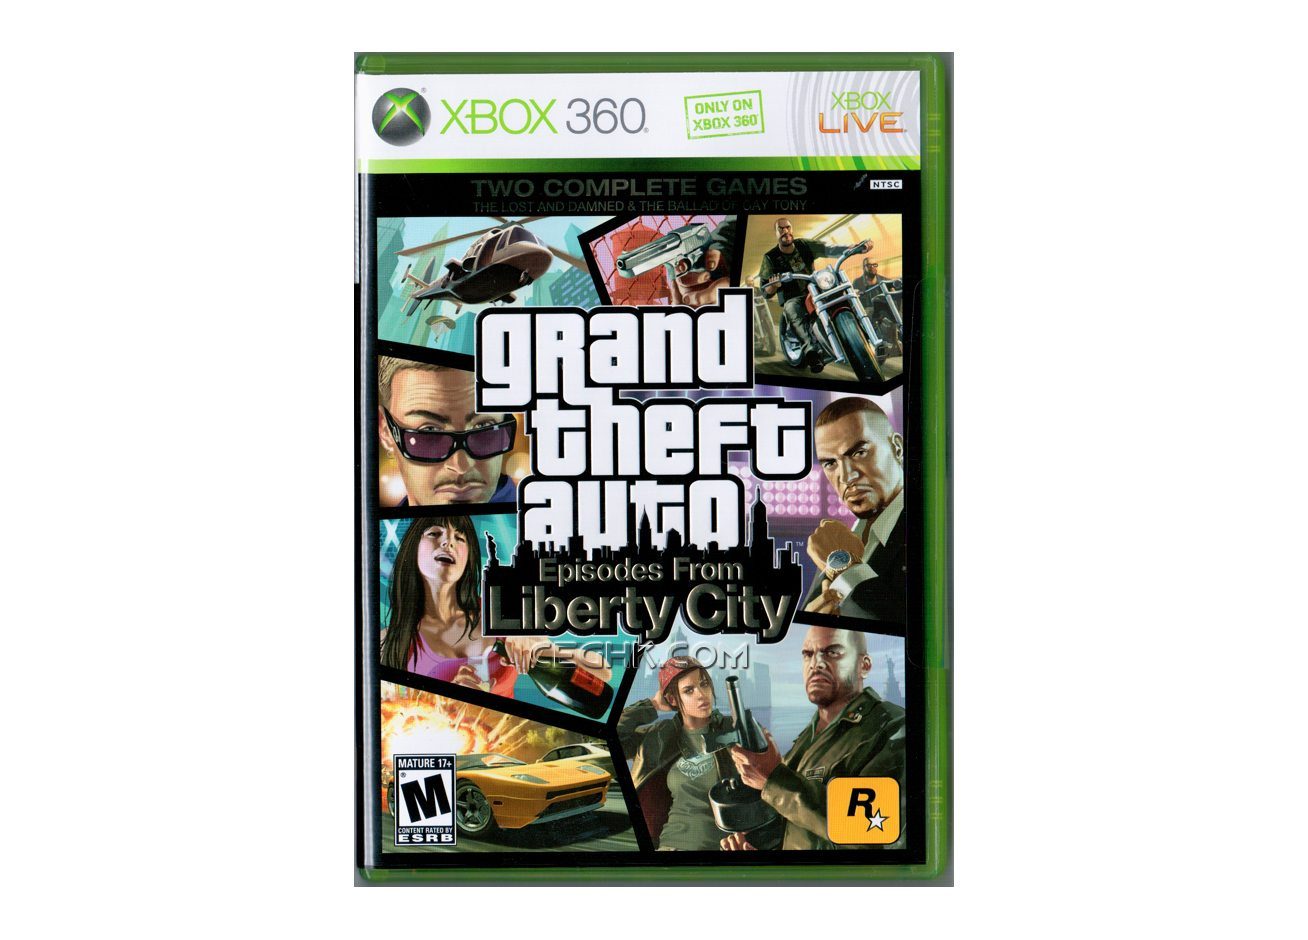 Xbox 360 Grand Theft Auto Episodes from Liberty City Xbox 360